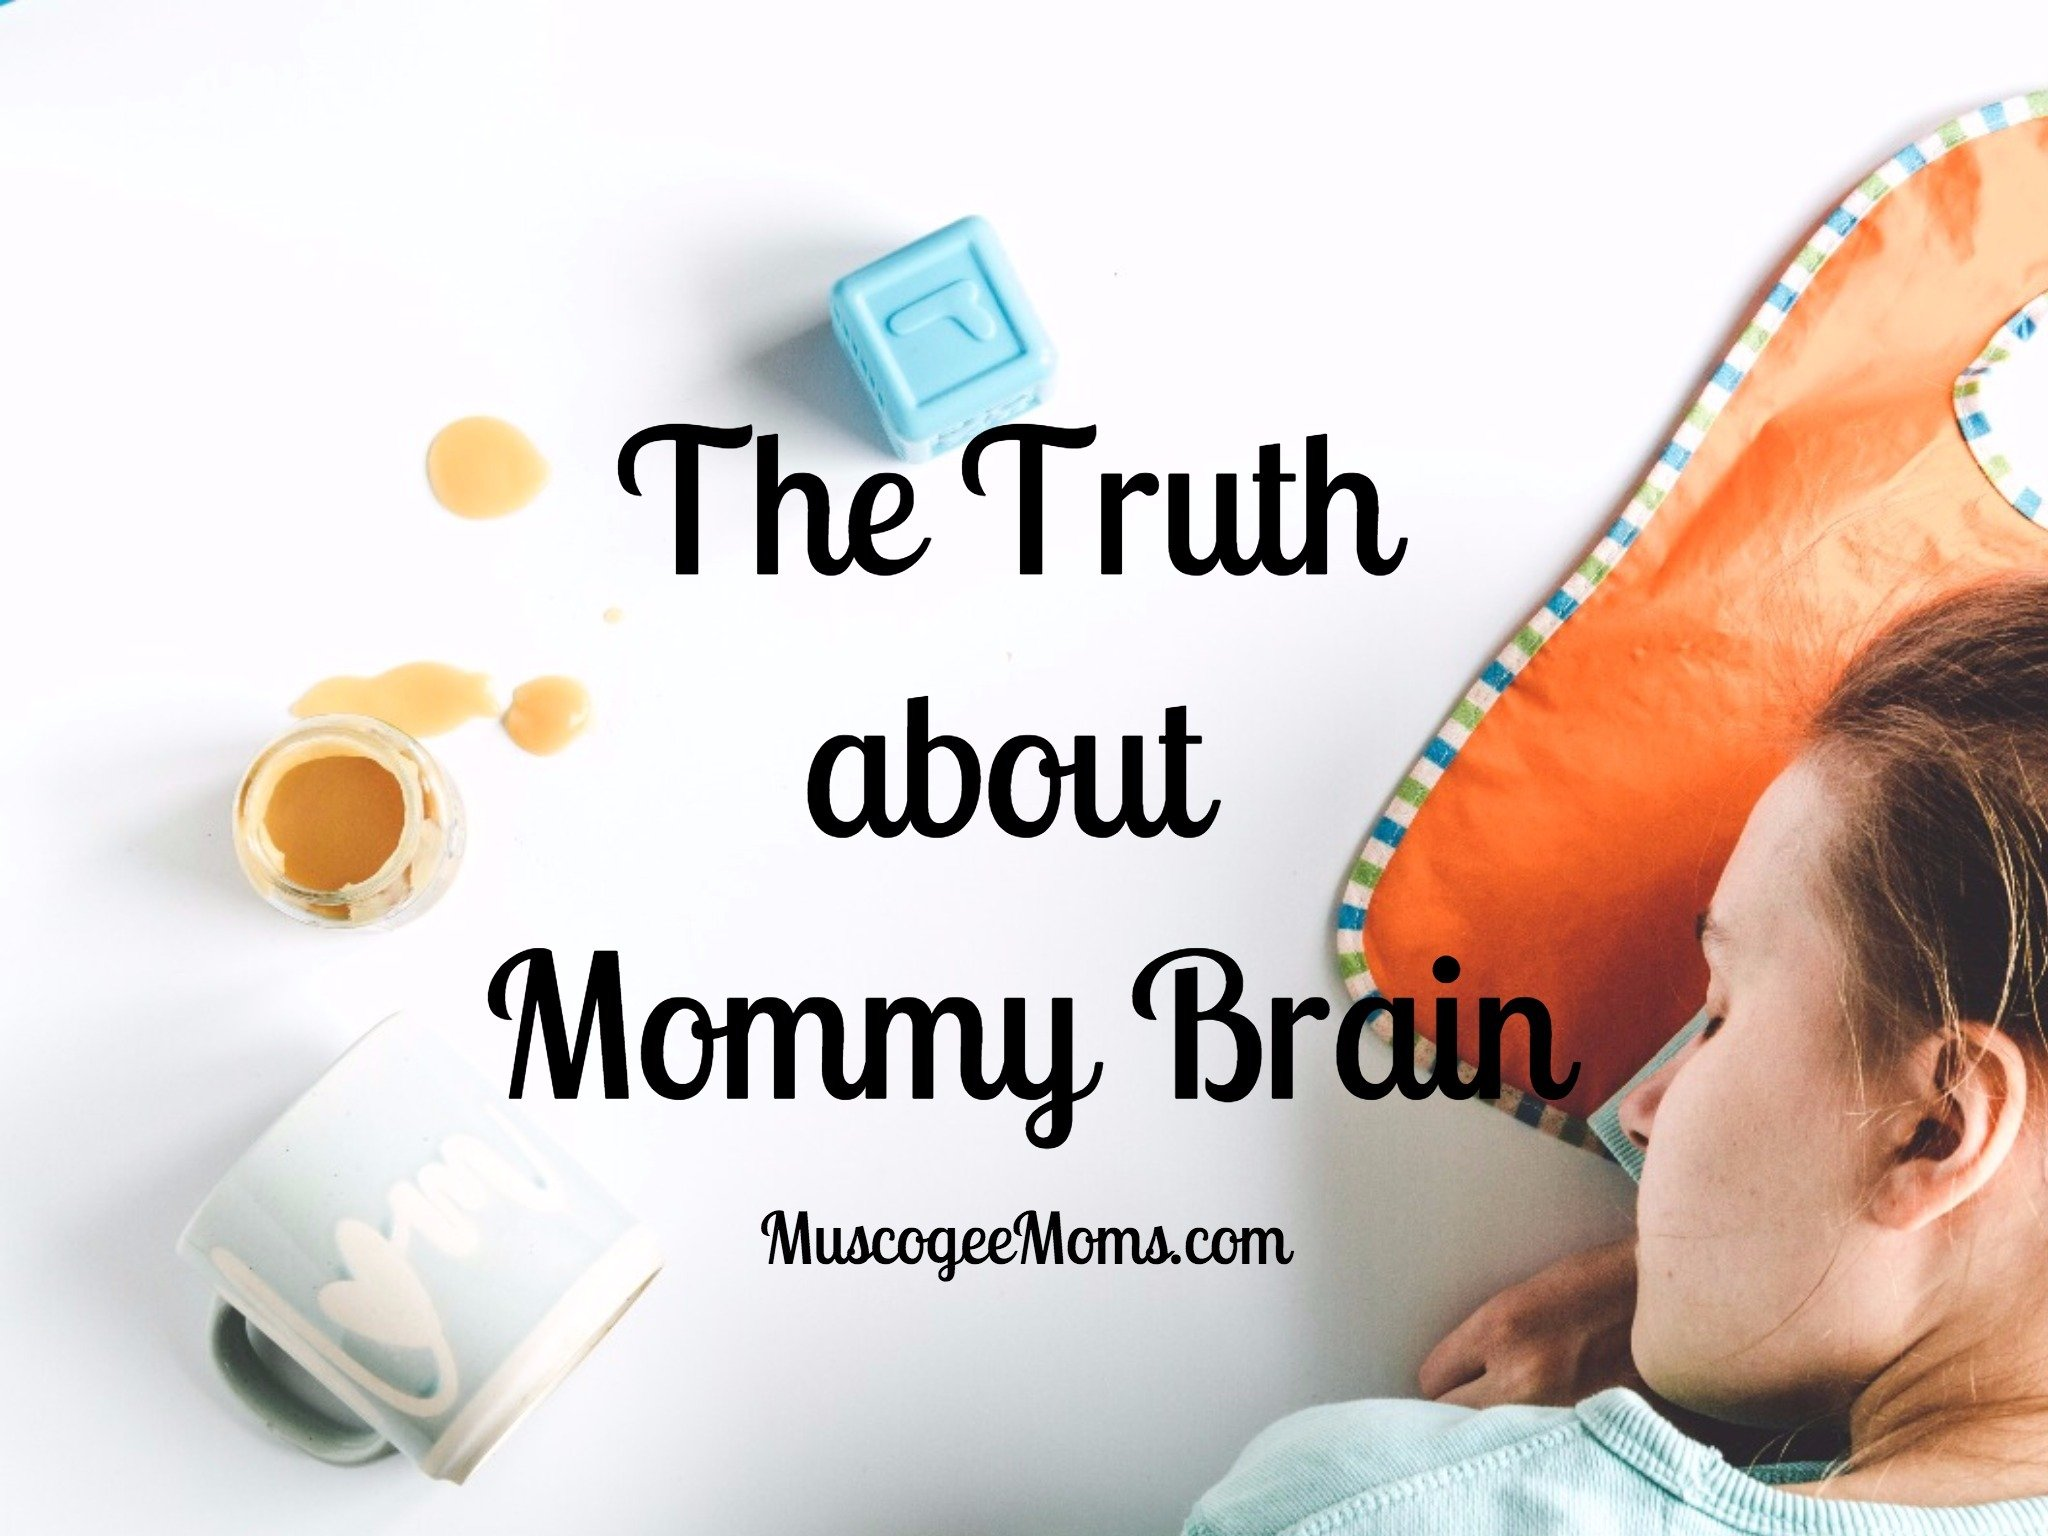 The Truth about Mommy Brain